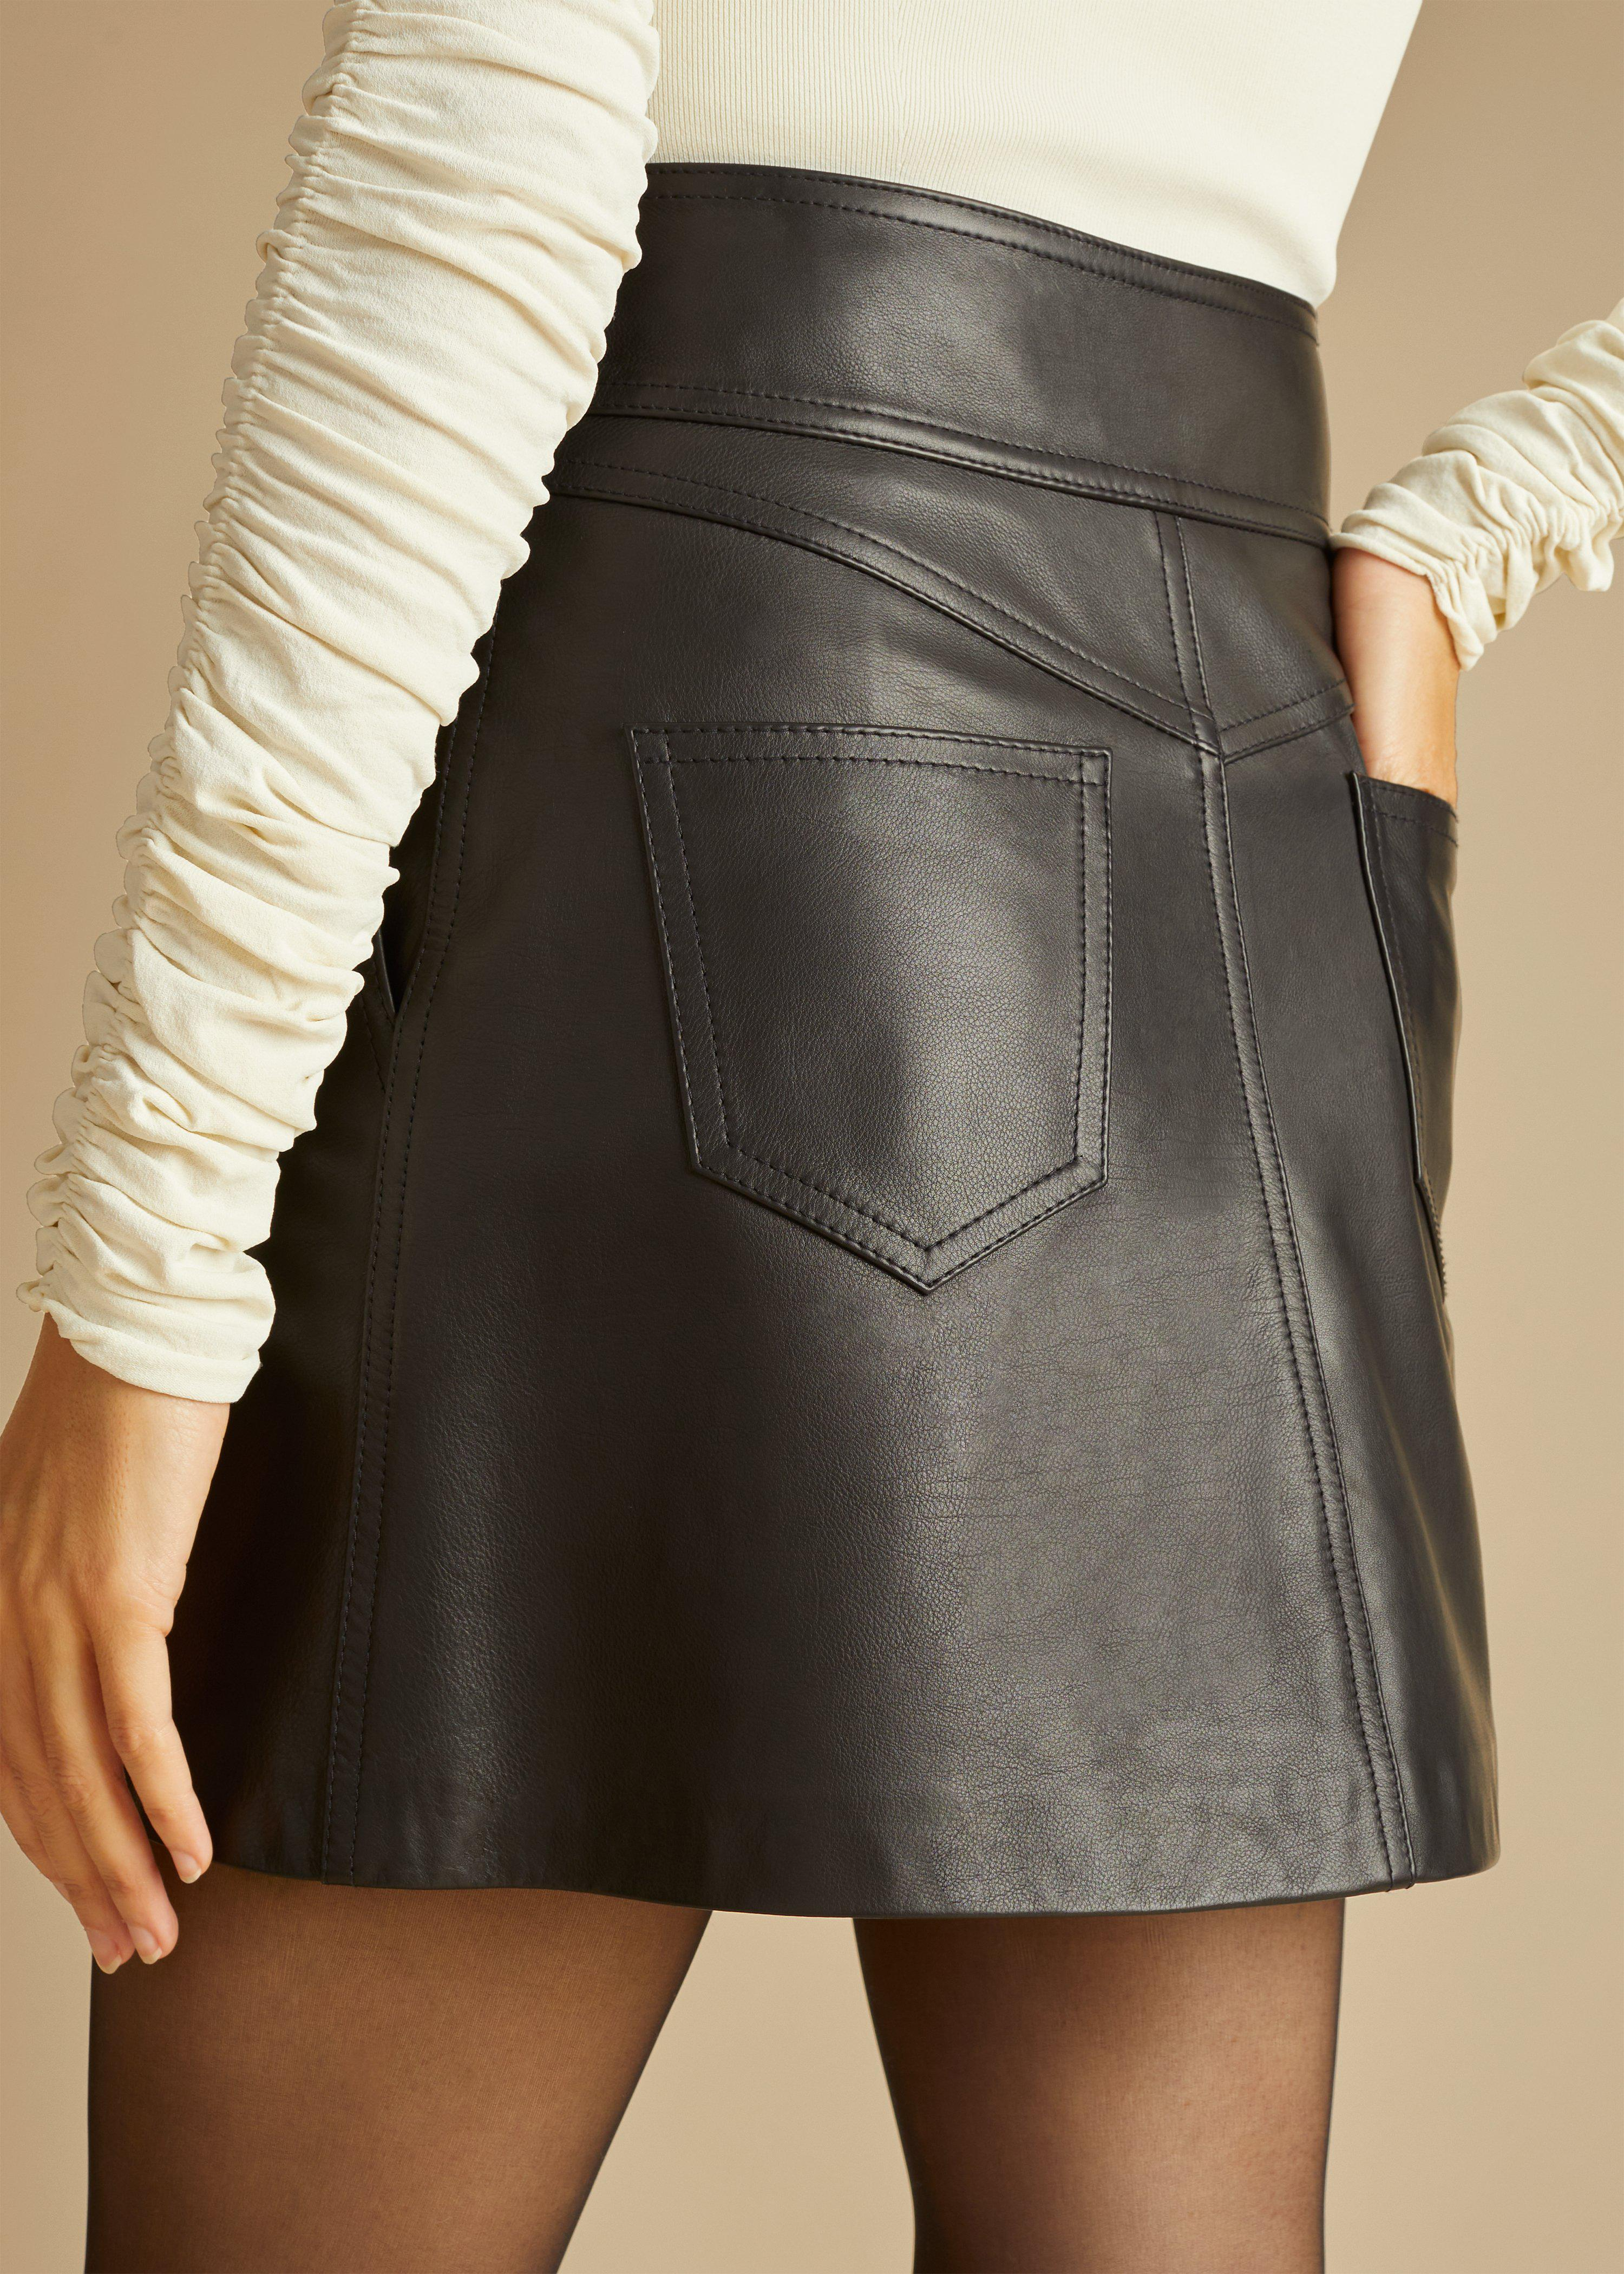 The Giulia Skirt in Black Leather 3